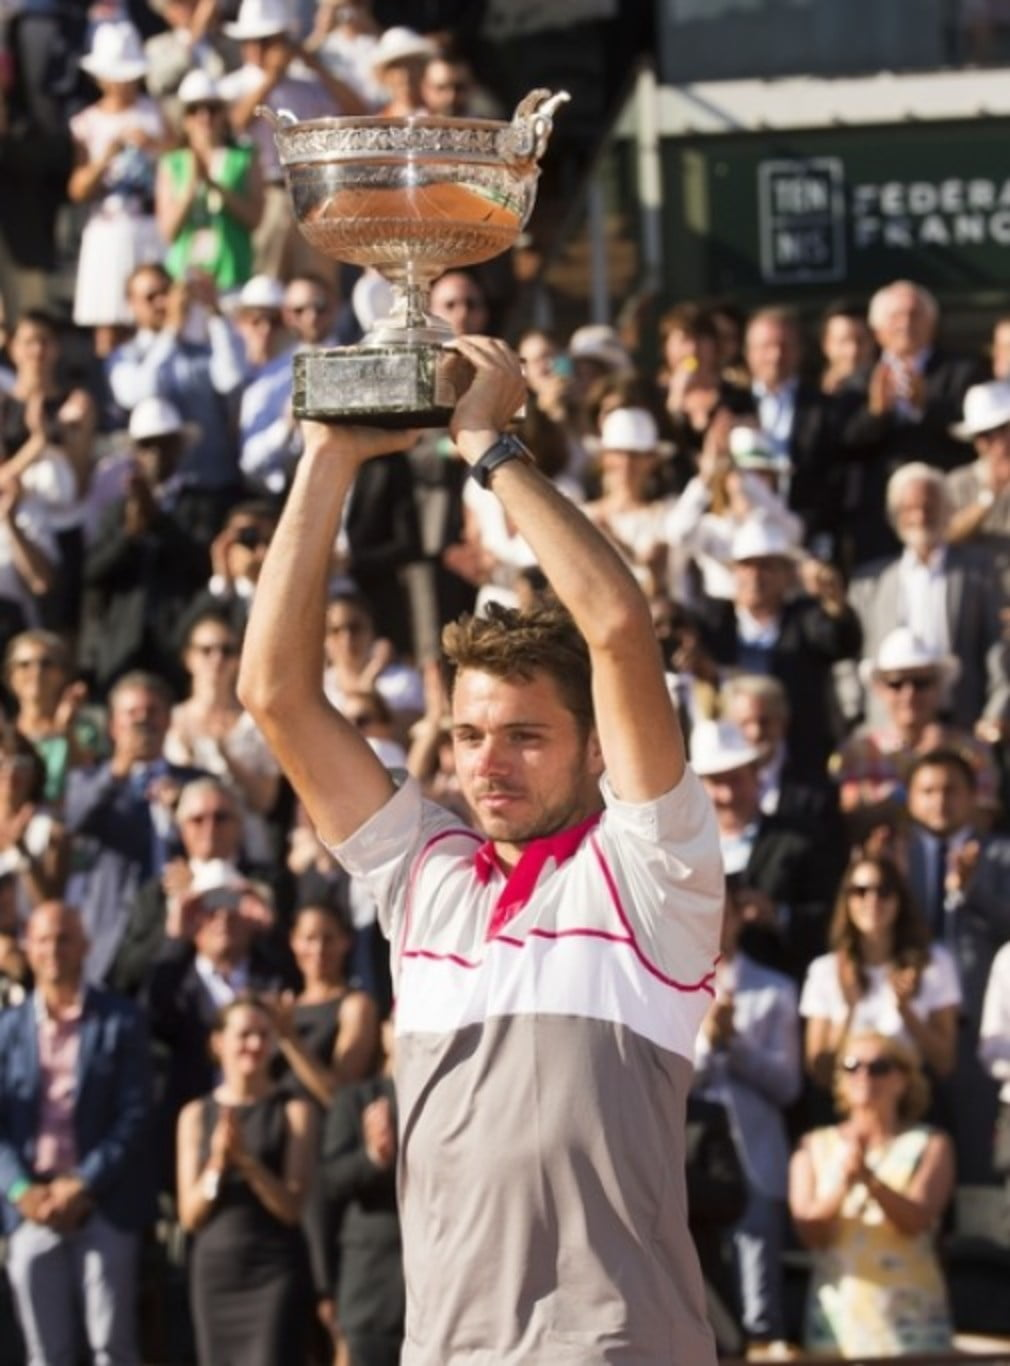 Winners of this yearŠ—Ès French Open singles will receive a cheque for ŠäŒ2 million after organisers revealed a total prize pot of more than ŠäŒ32 million for the 2016 tournament